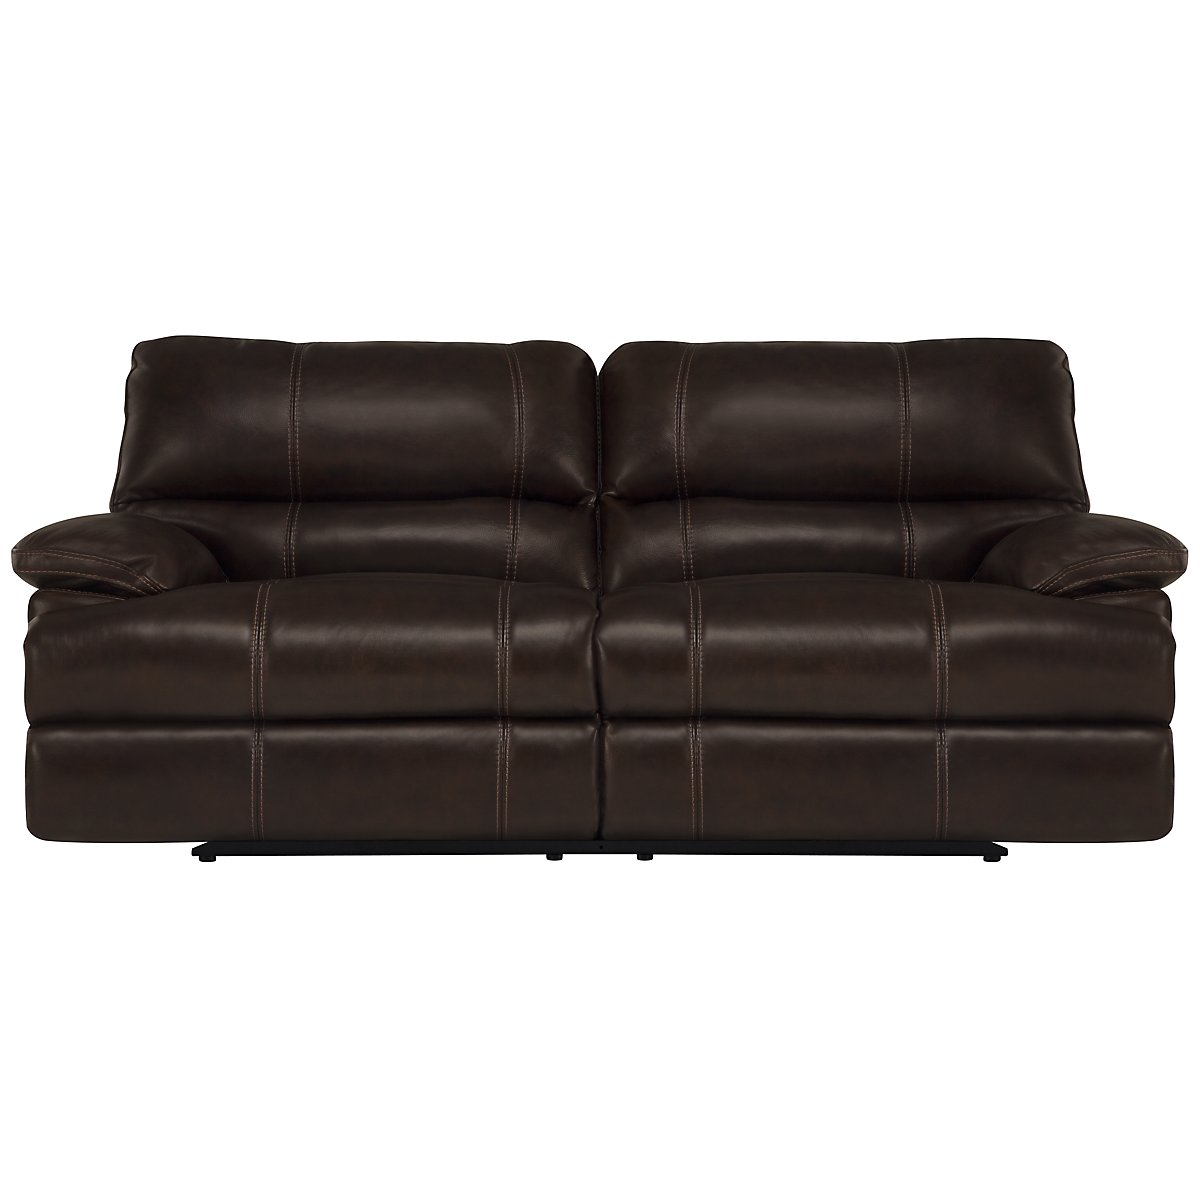 Alton2 Dark Brown Leather & Vinyl Power Reclining Sofa